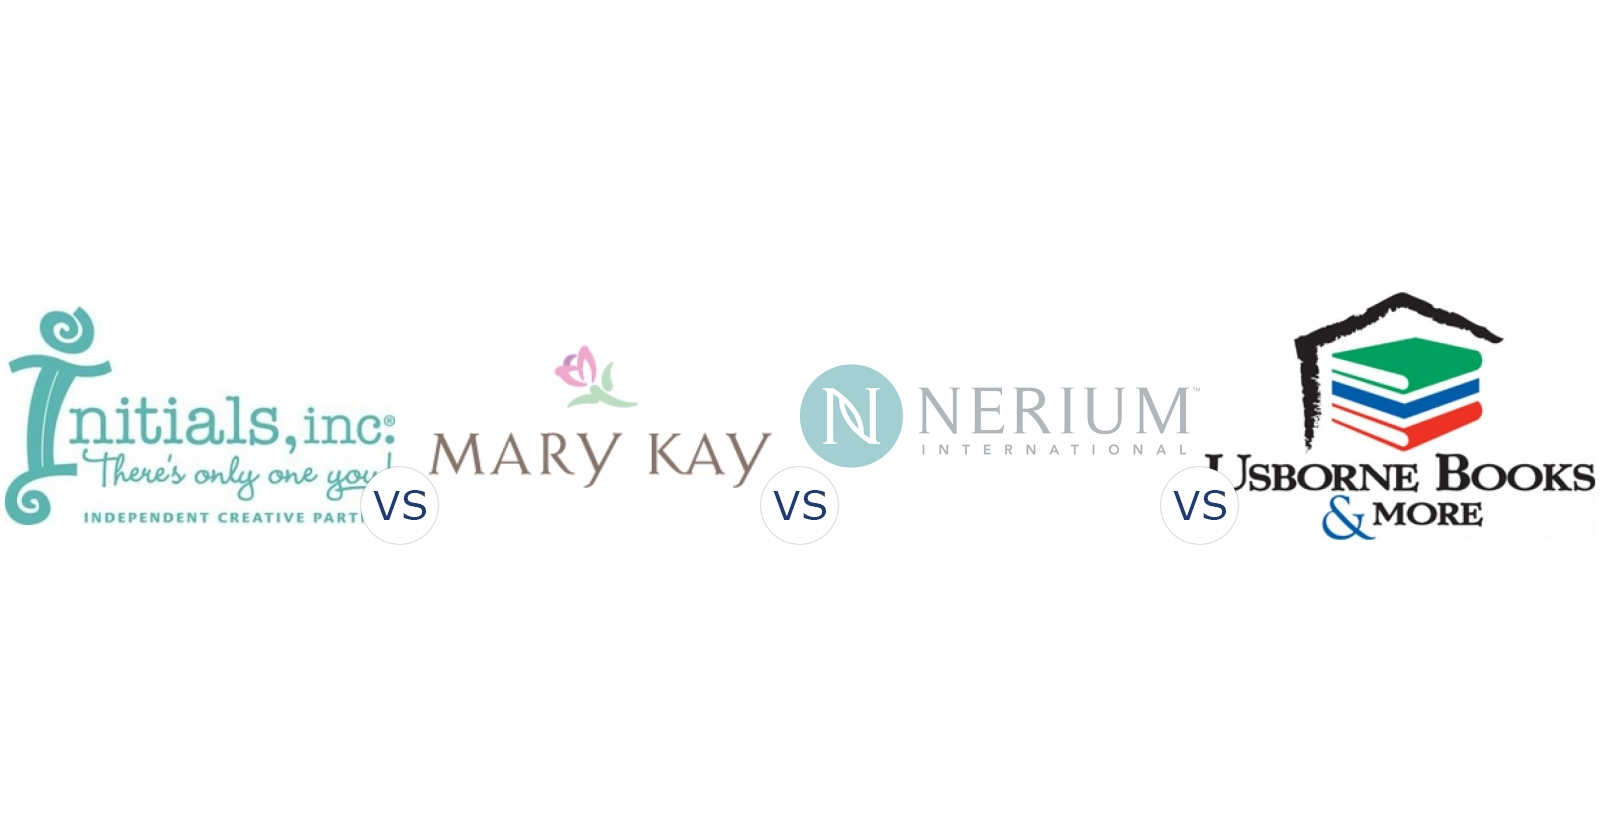 Initials Inc. vs. Mary Kay vs. Nerium International vs. Usborne Books